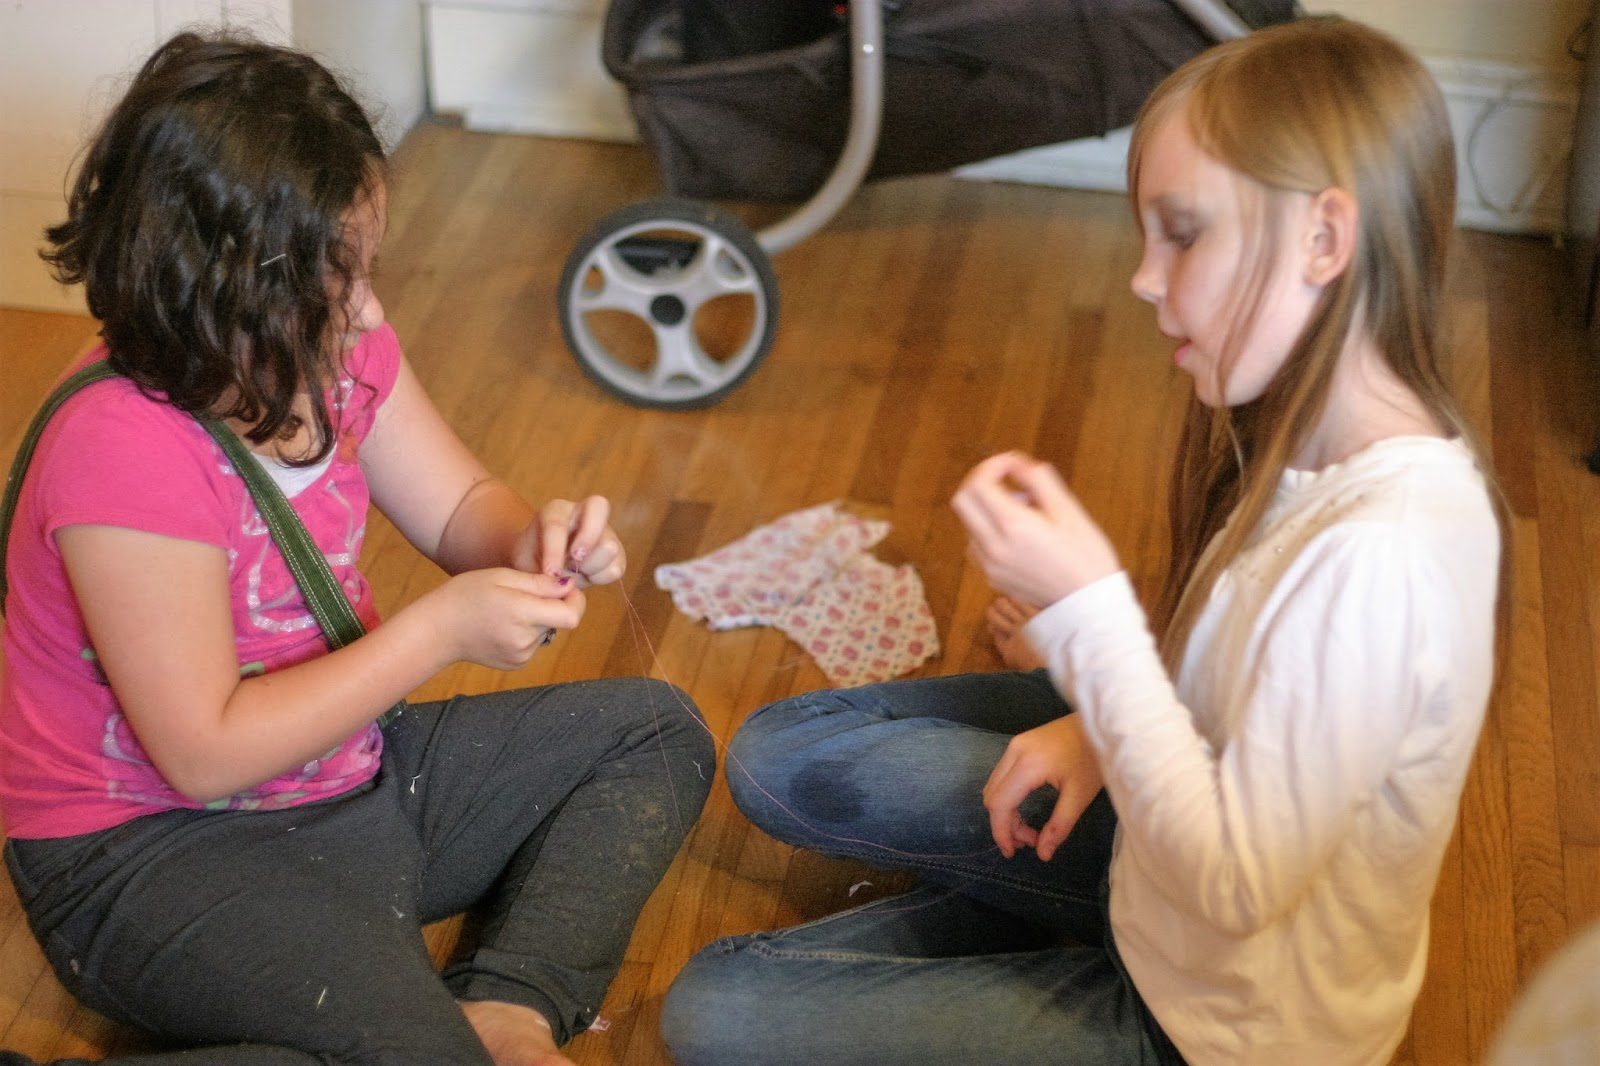 Genevieve Generally Uses Tape, The Stapler, And Hair Ties To Force Her  Fabric Into What She Has In Mind This Time, She Showed Her Friend How To  Hand Sew